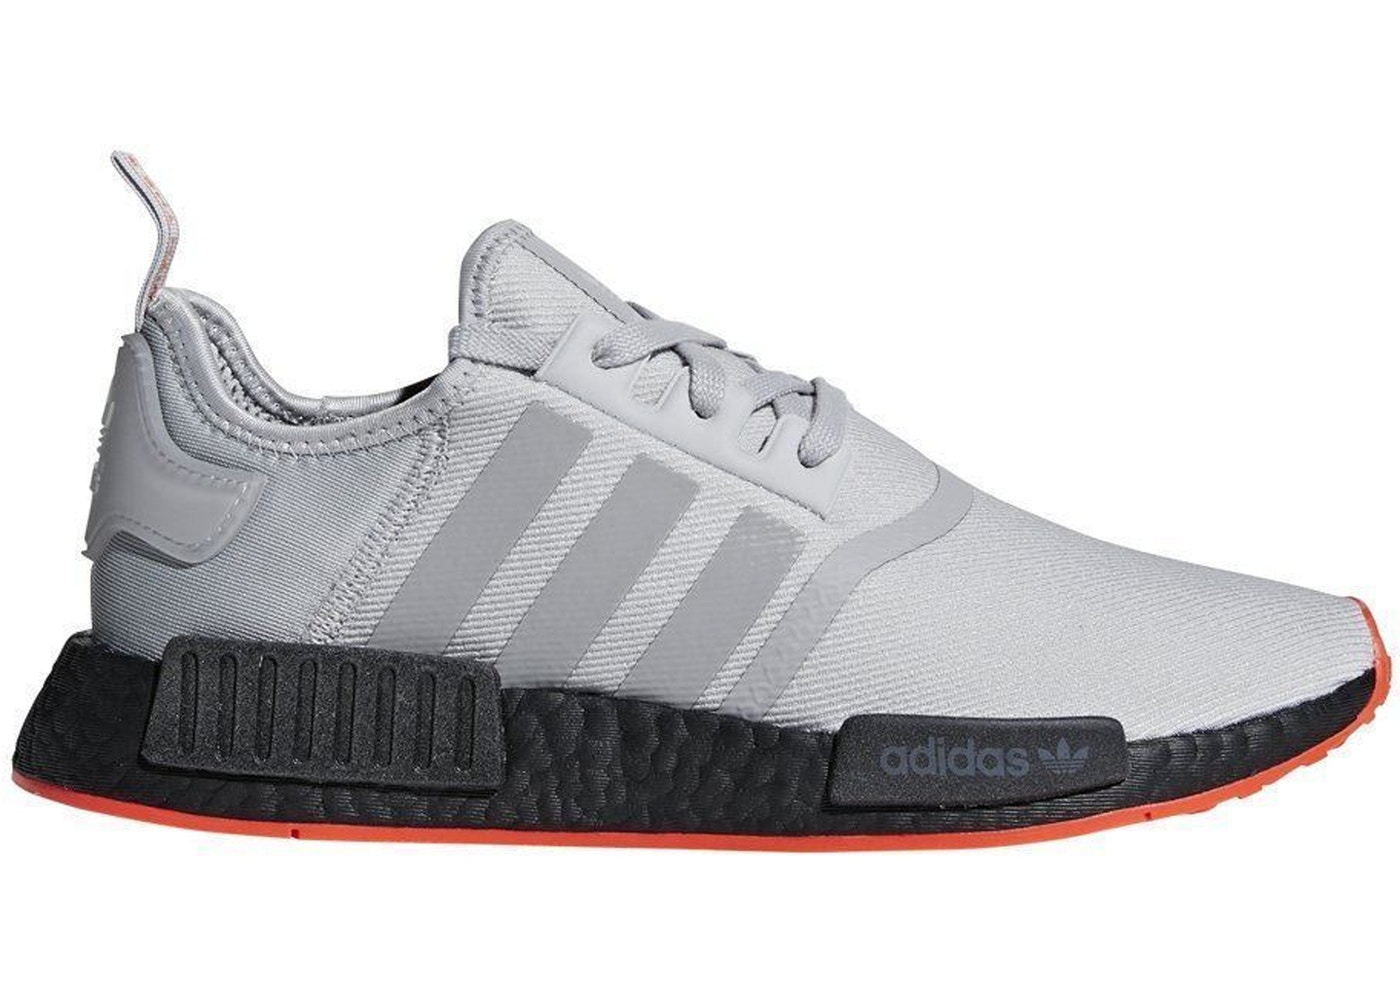 Adidas Nmd R1 Grey Solar Red F35882